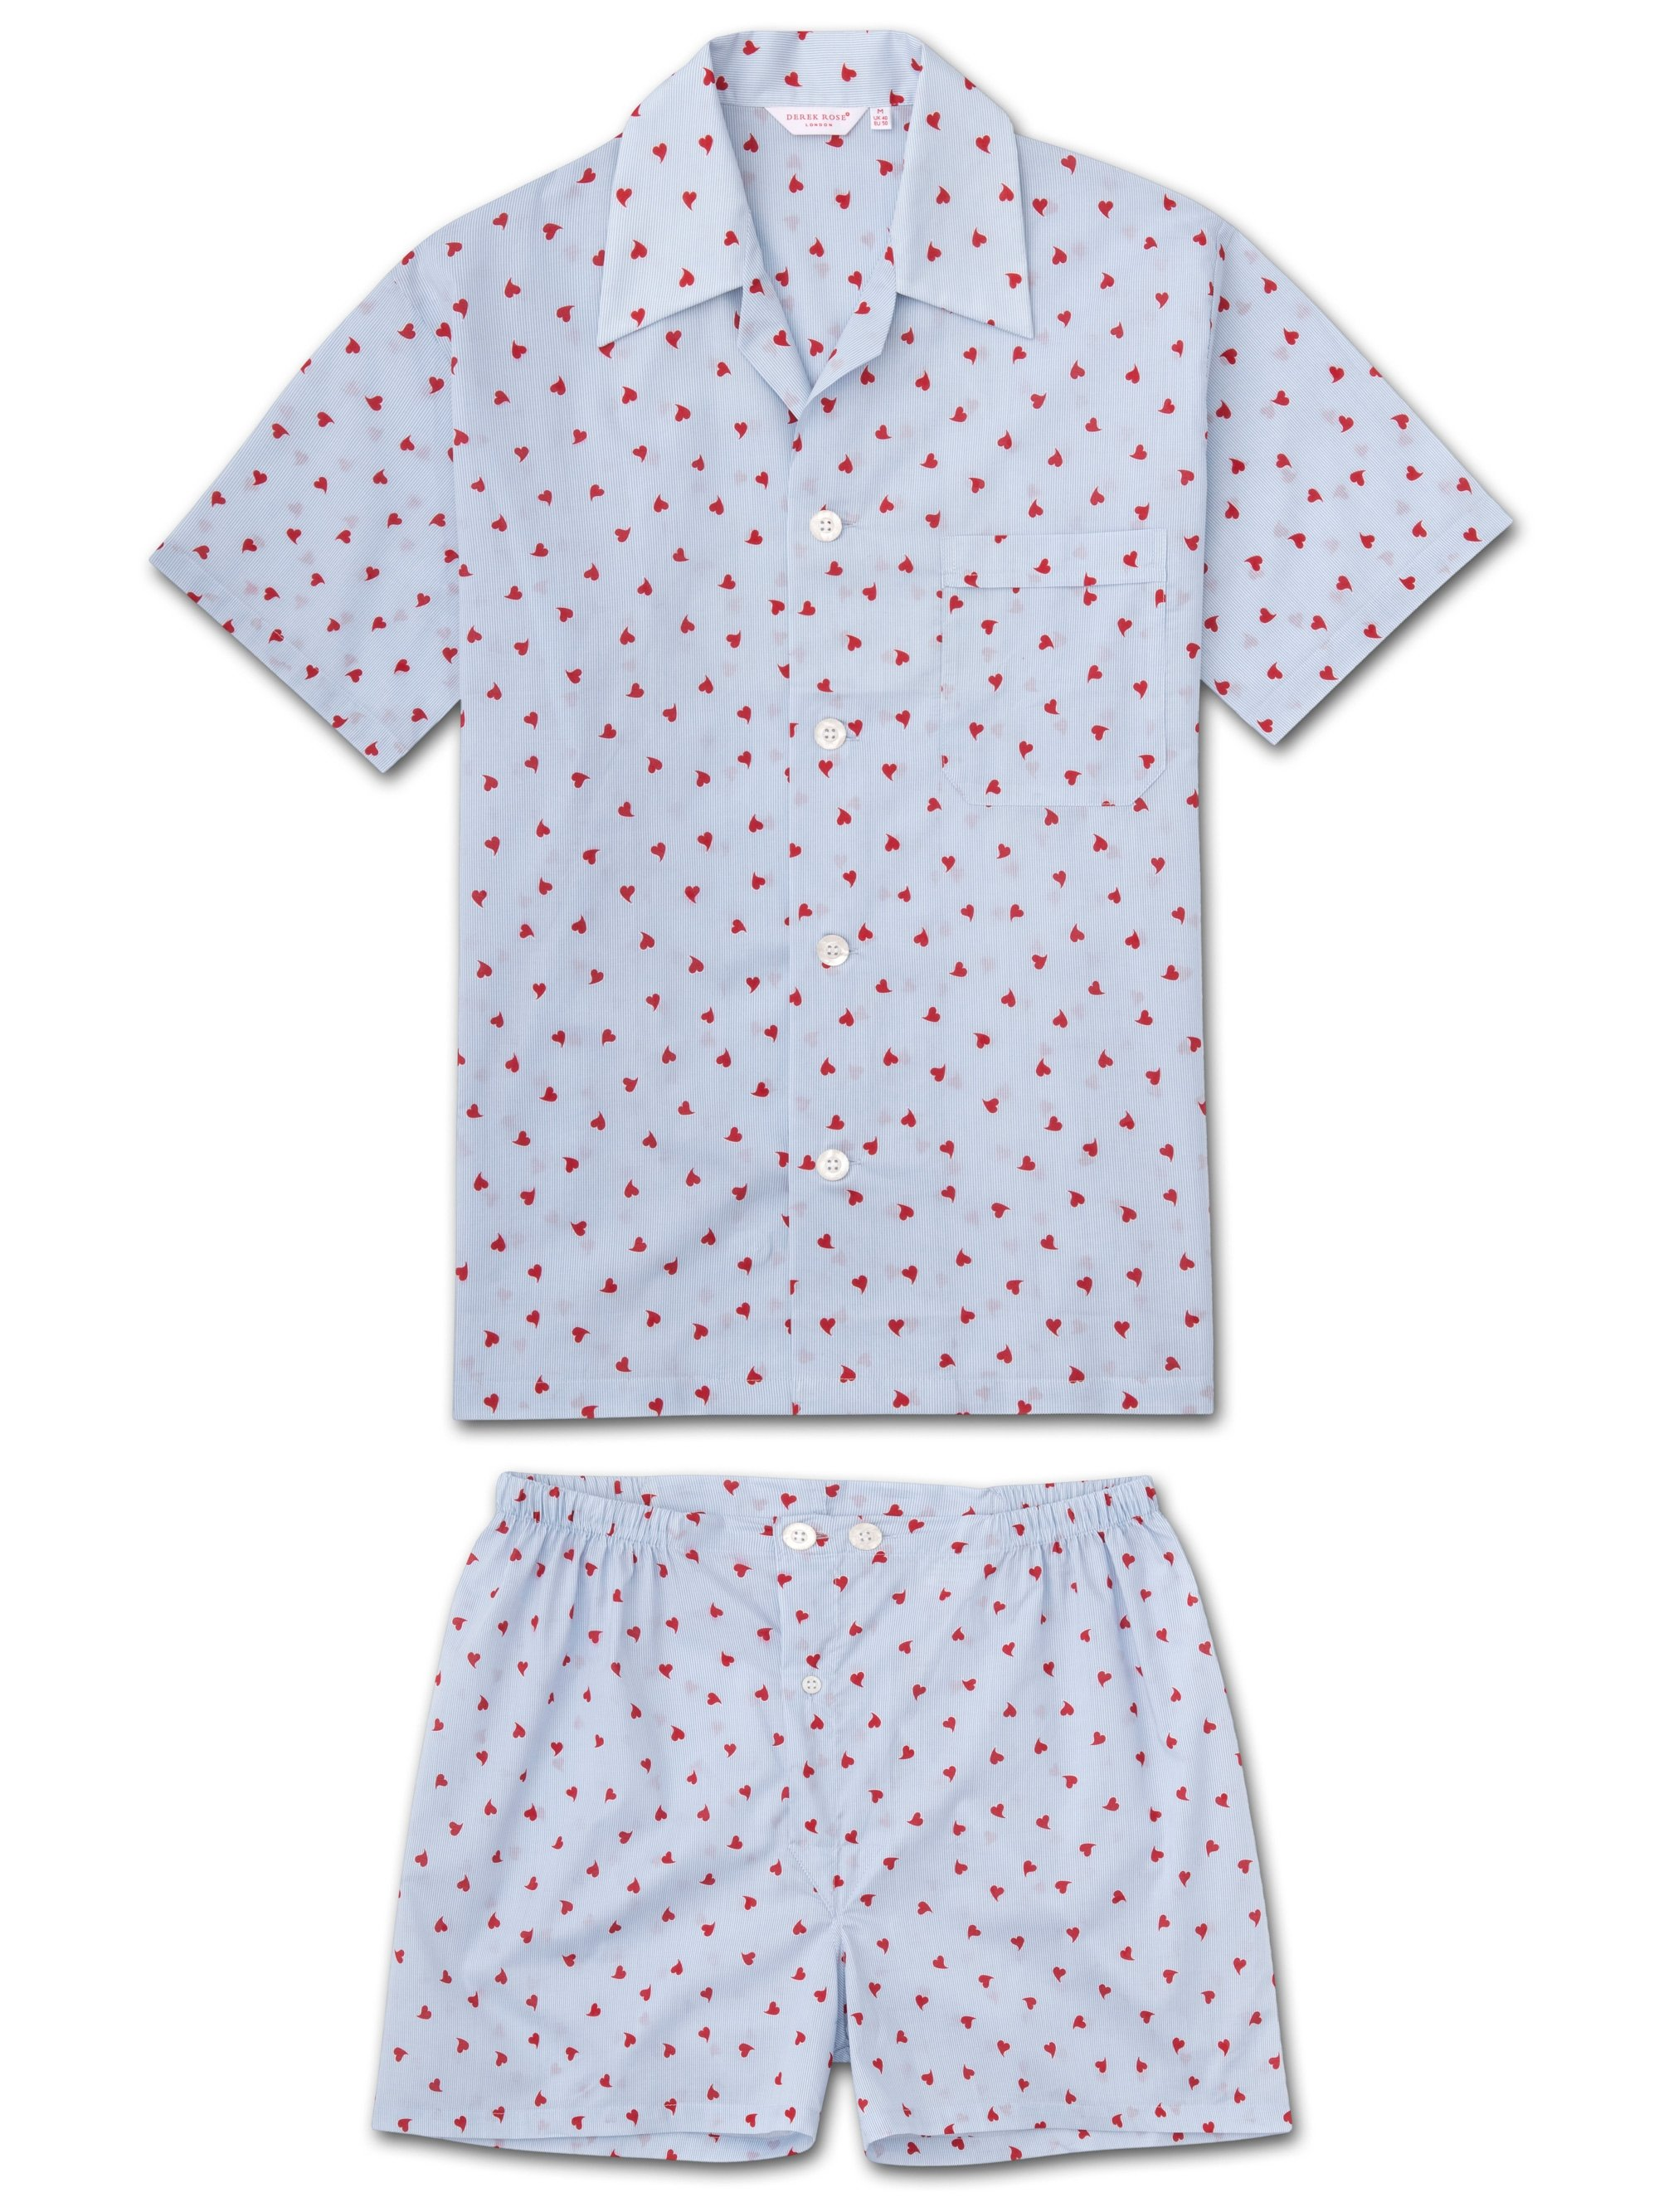 Men's Short Pyjamas Nelson 75 Cotton Batiste Blue